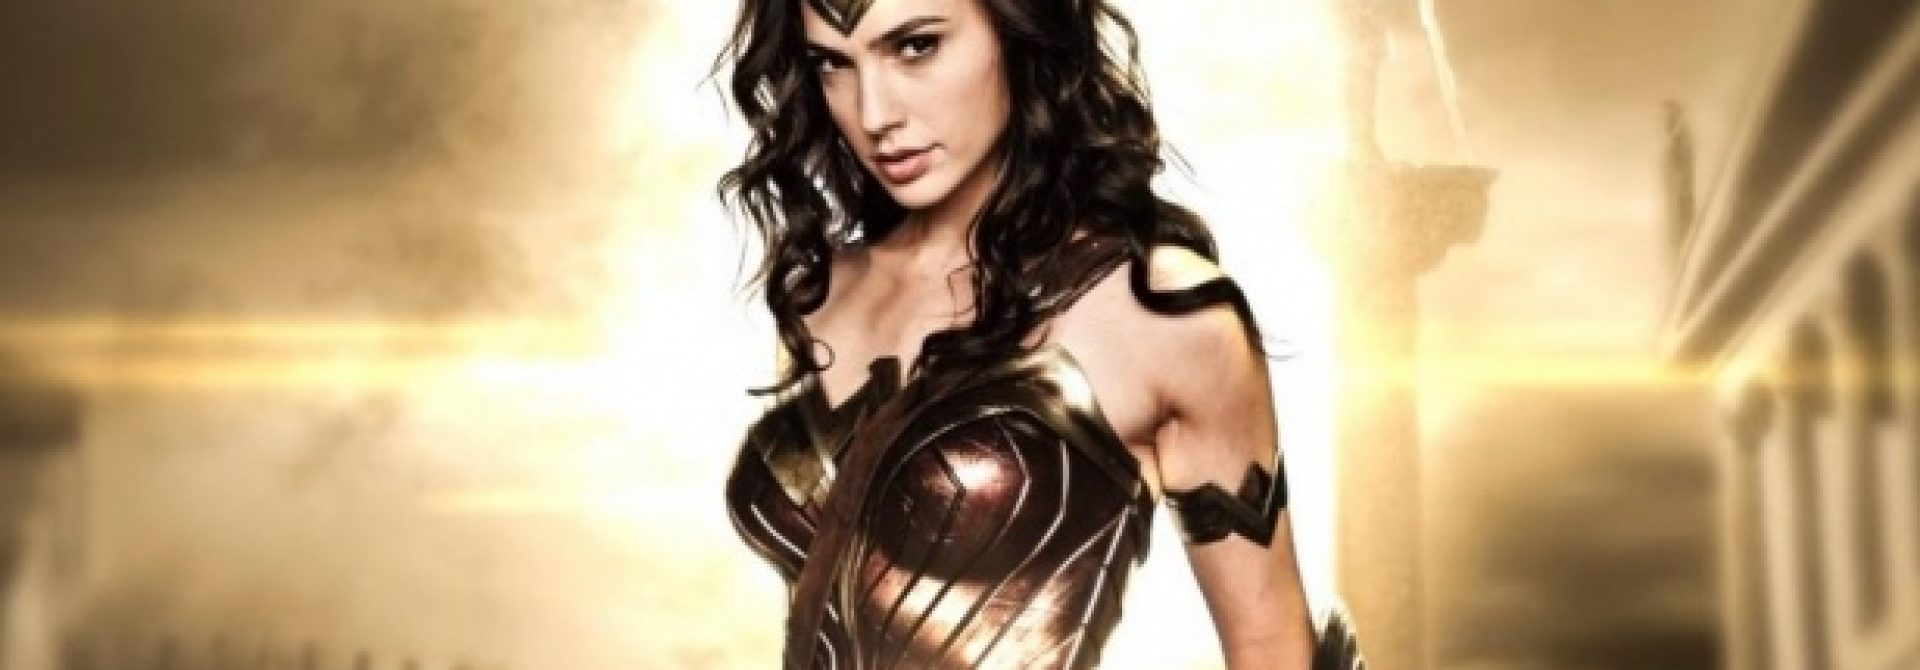 Wonder Woman Director Stands By Film